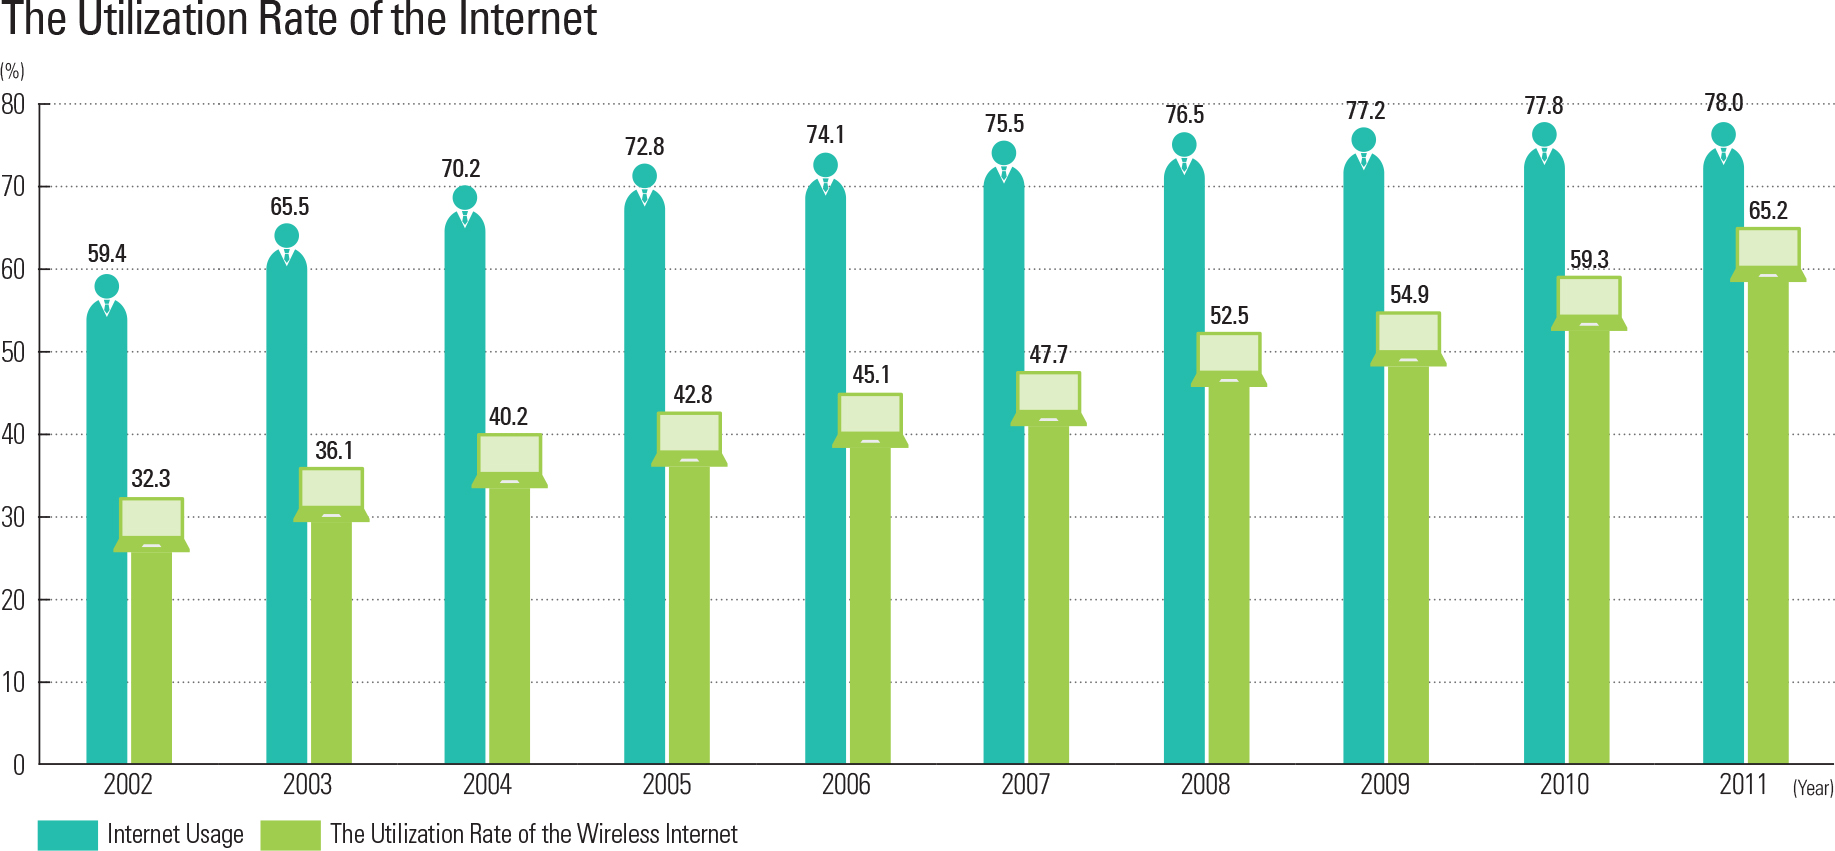 The Utilization Rate of the Internet